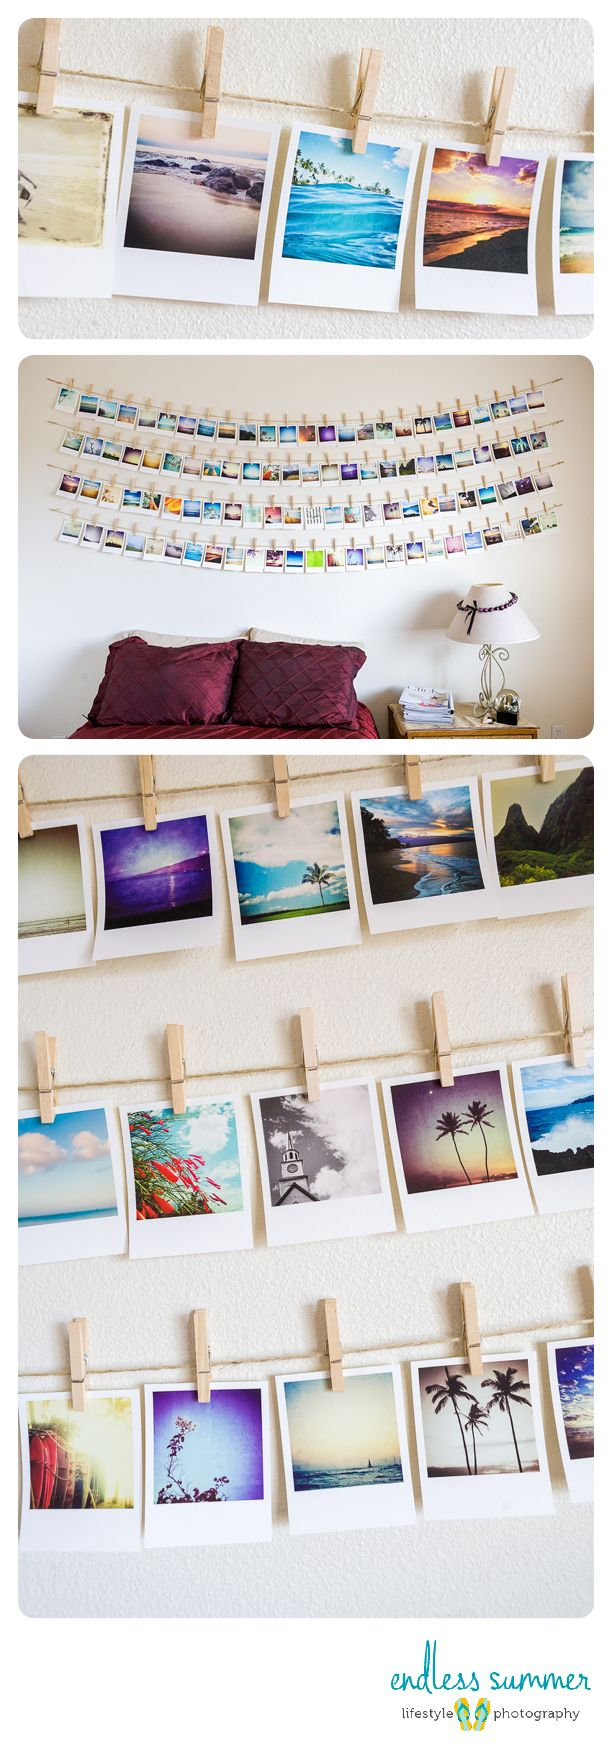 Polaroid Photo Wall Something Similar For Reference Photos Quick Sketches Concepts And - Bilder Aufhängen Ideen